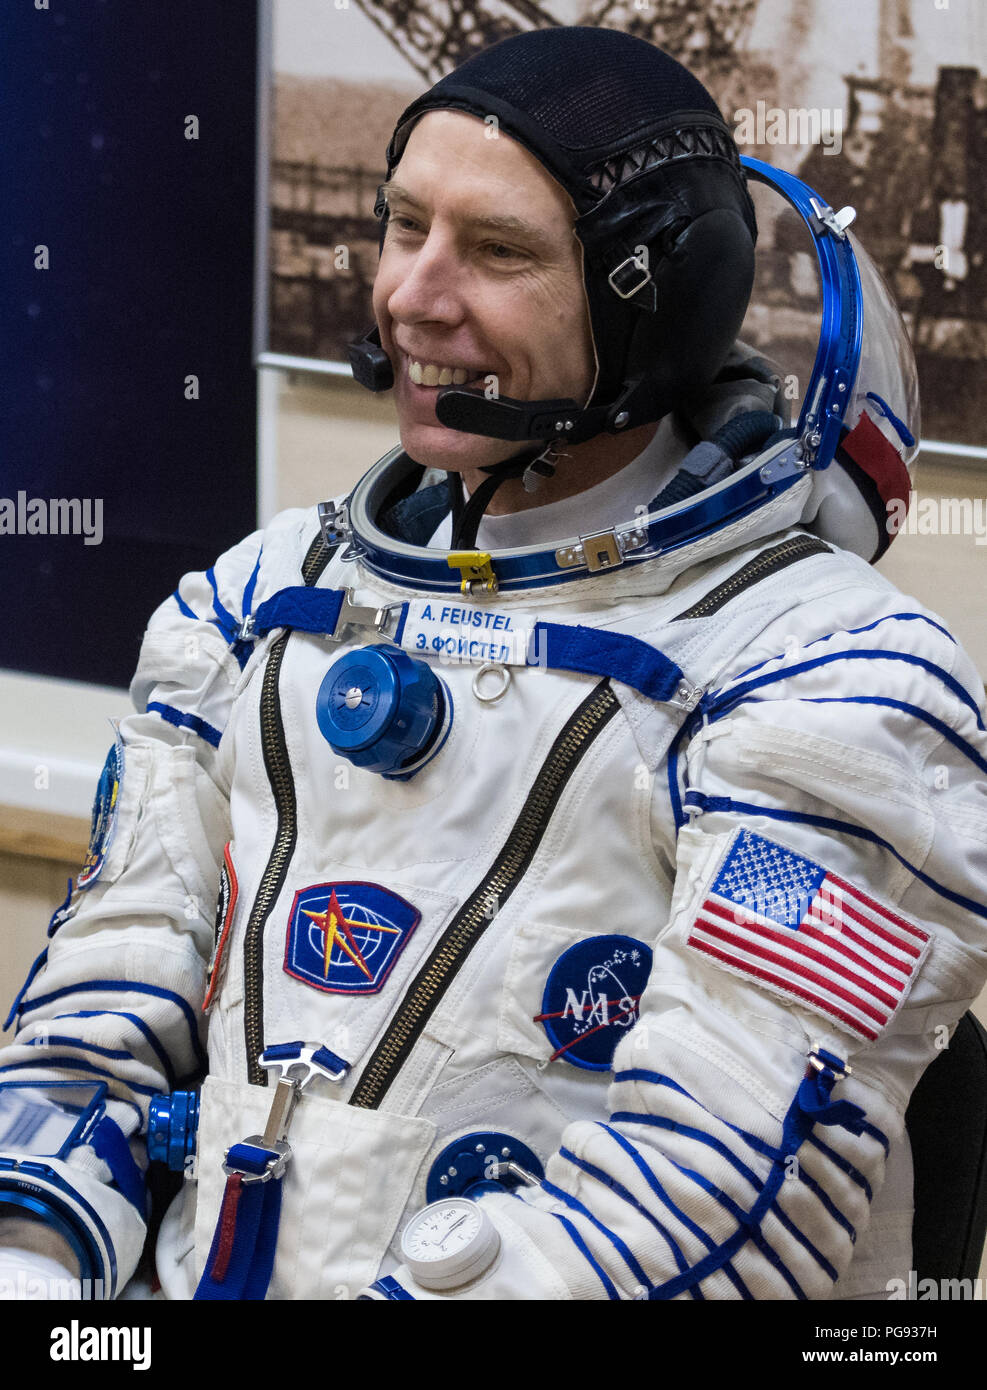 Expedition 55 flight engineer Drew Feustel of NASA  is seen as he waits to have his Russian Sokol suit pressure checked in preparation for launch aboard the Soyuz MS-08 spacecraft, Wednesday, March 21, 2018 at the Baikonur Cosmodrome in Kazakhstan. Feustel, Soyuz Commander Oleg Artemyev of Roscosmos, and flight engineer Ricky Arnold of NASA launched aboard the Soyuz MS-08 spacecraft at 1:44 p.m. Eastern time (11:44 p.m. Baikonur time) on March 21 to begin their journey to the International Space Station. - Stock Image